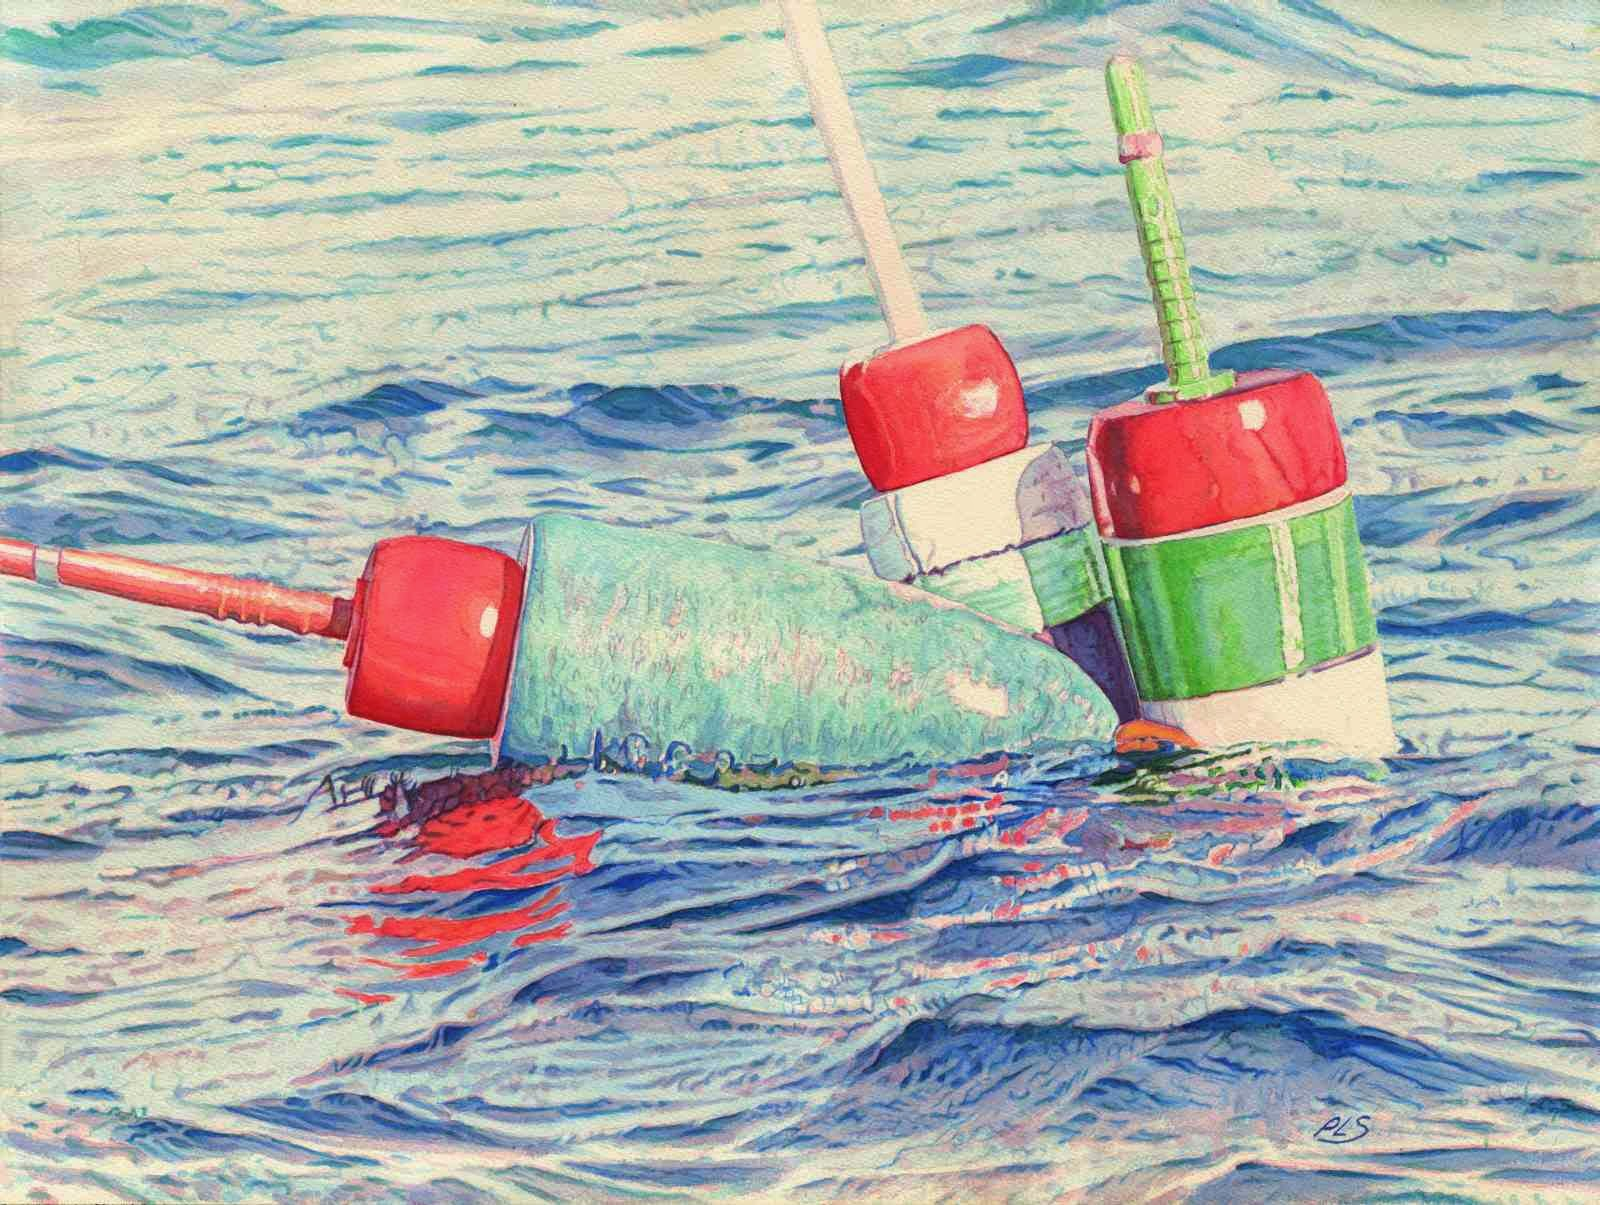 """Buoy Knot IV"" by Paul Sherman"